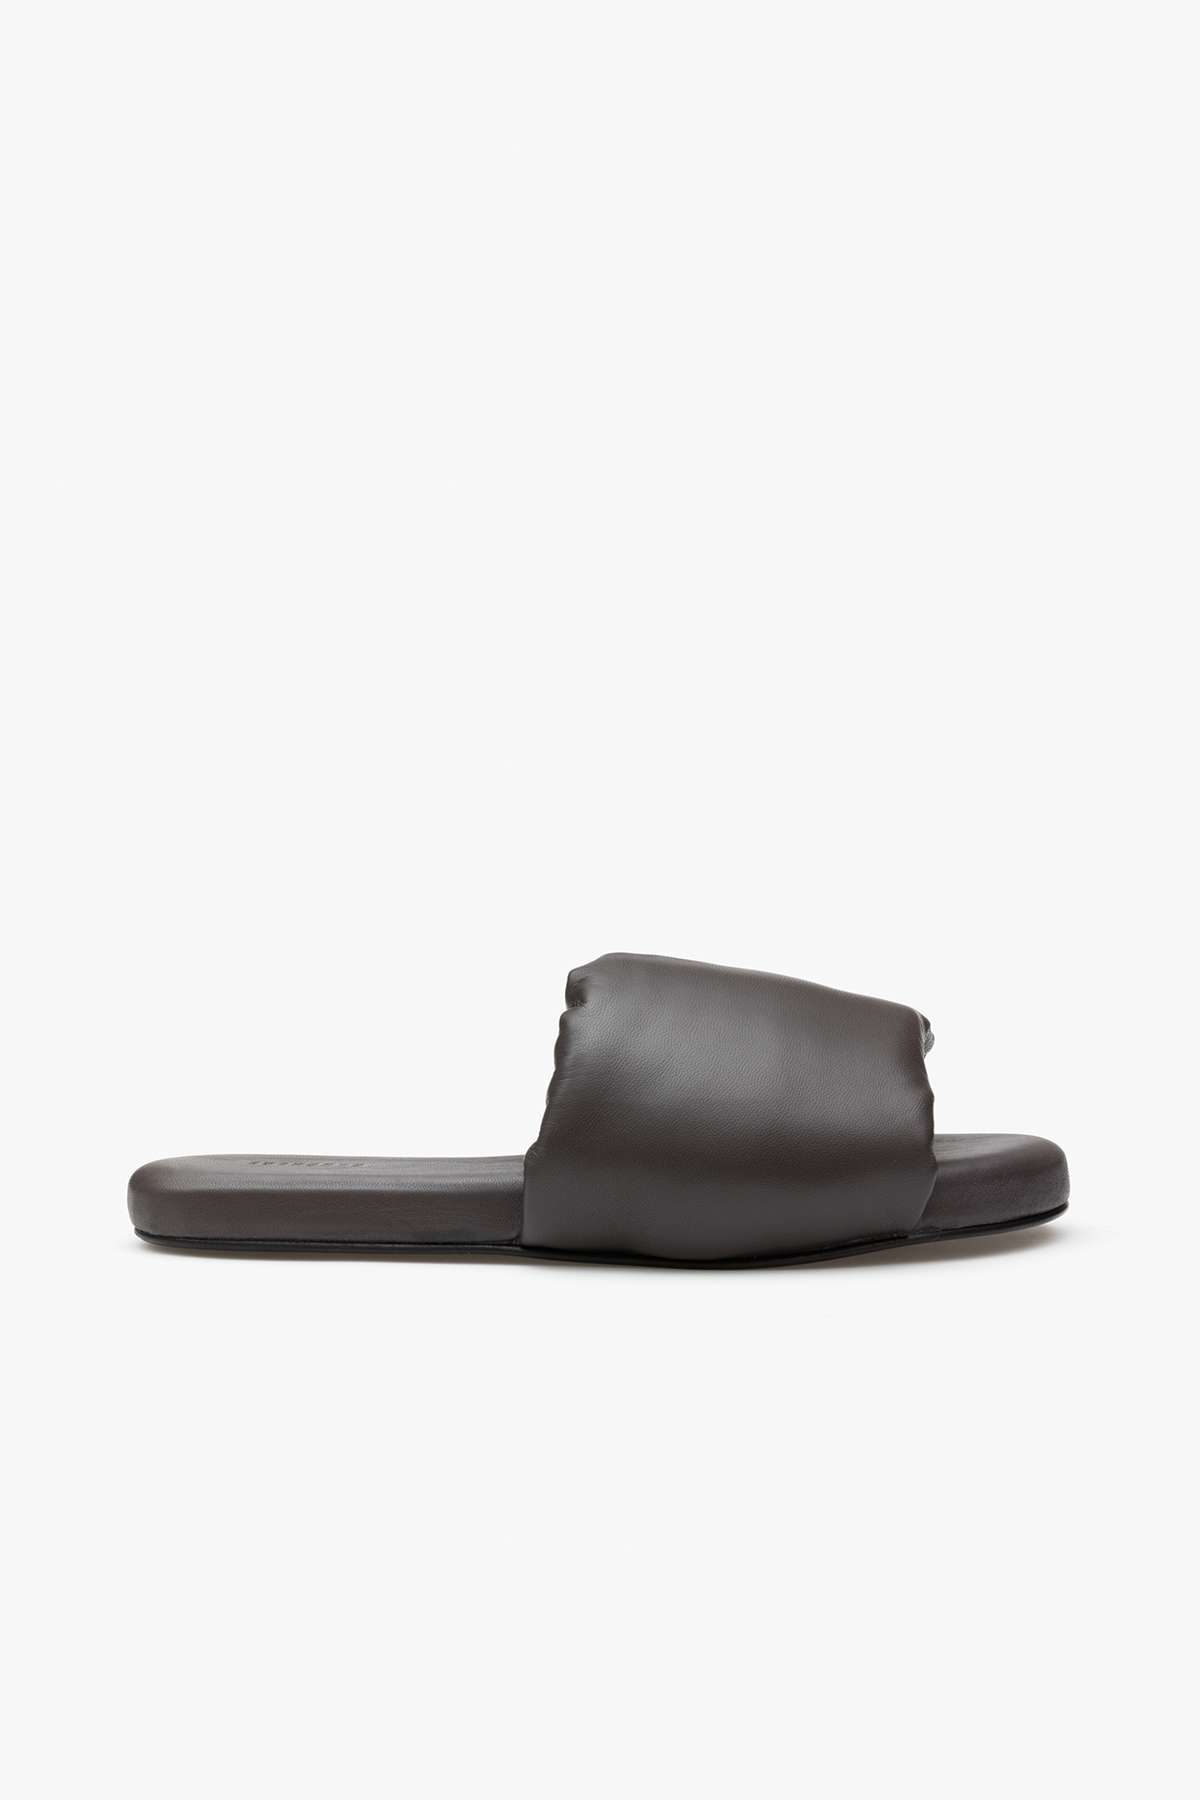 PILLOW SHOE ANTHRACITE